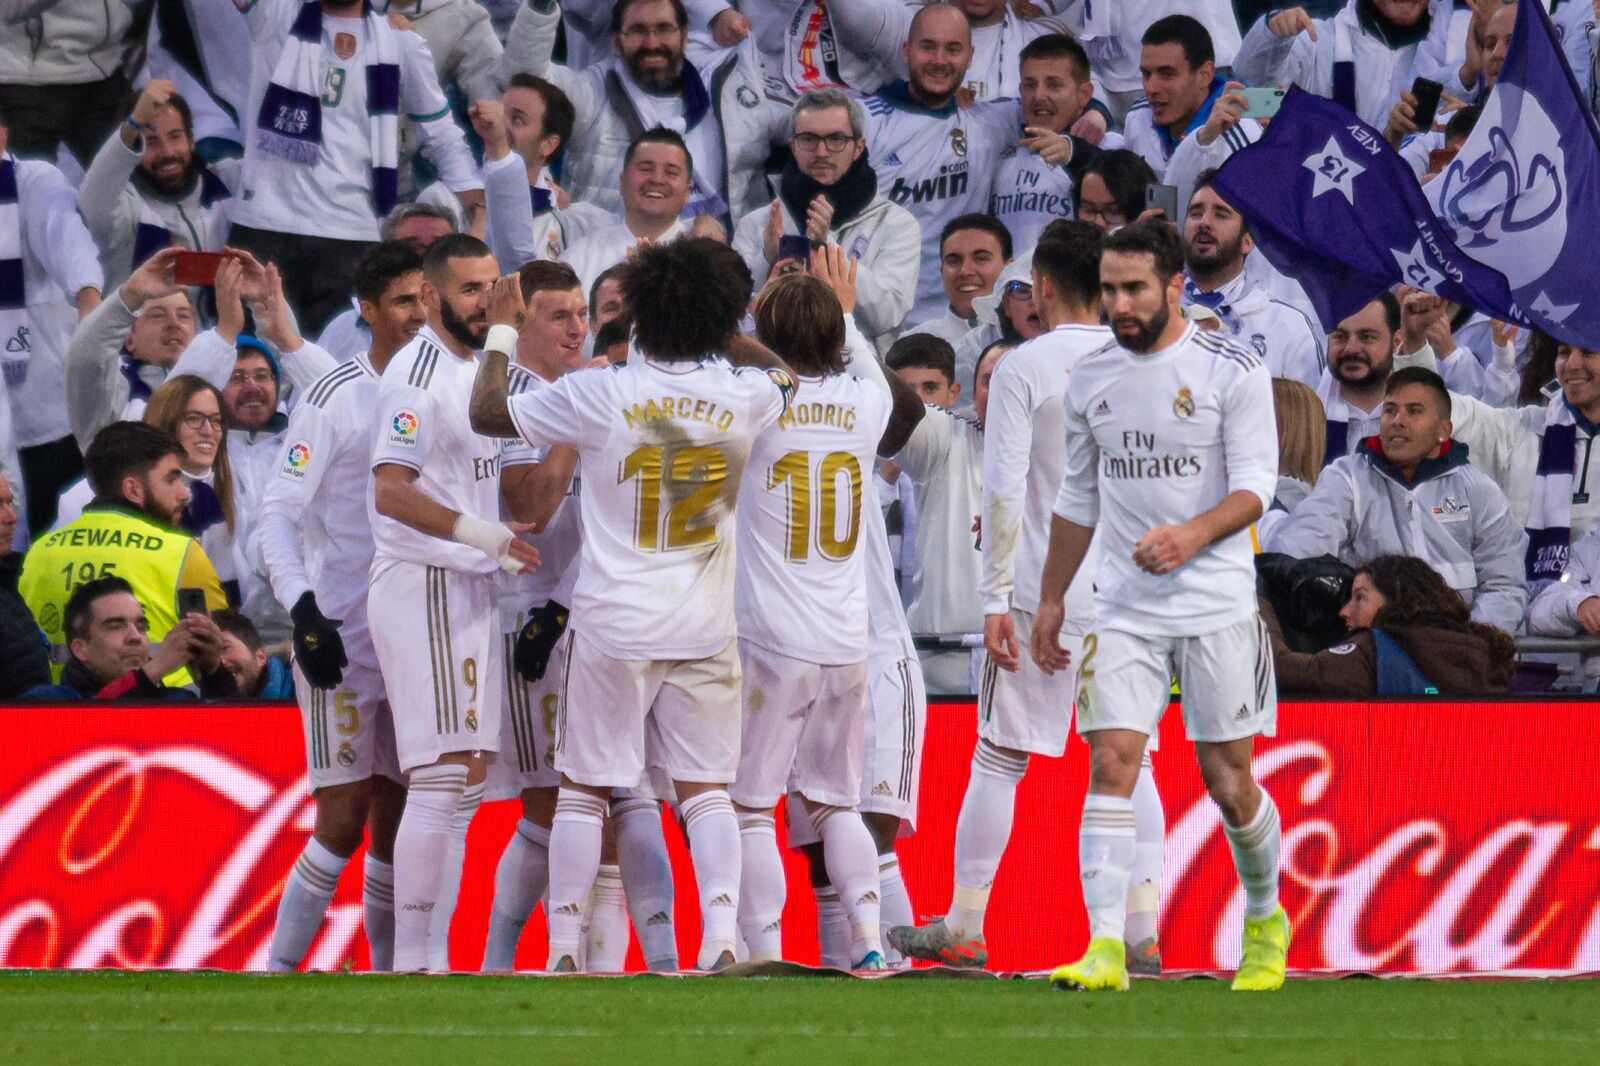 Real Madrid's 91 days of glory rolls on